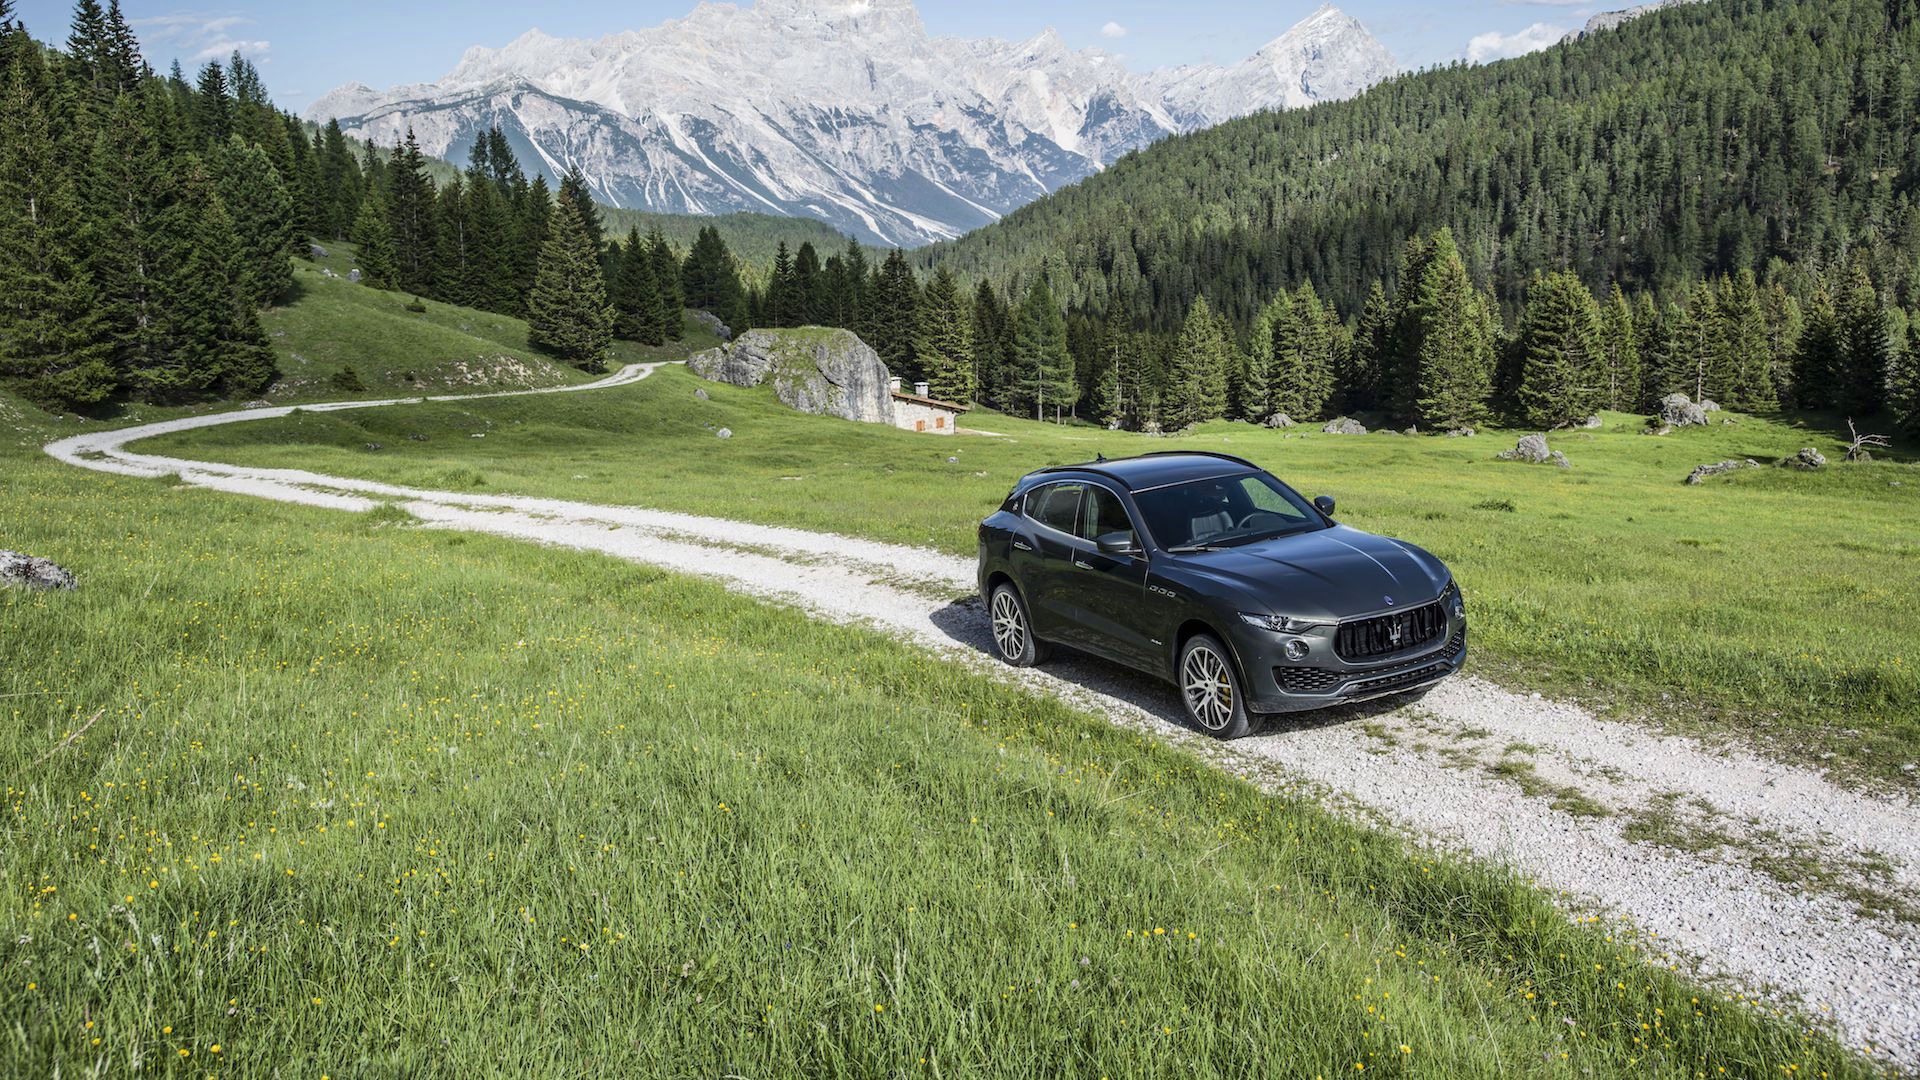 Maserati Levante driving in a mountains landscape - air suspension technology